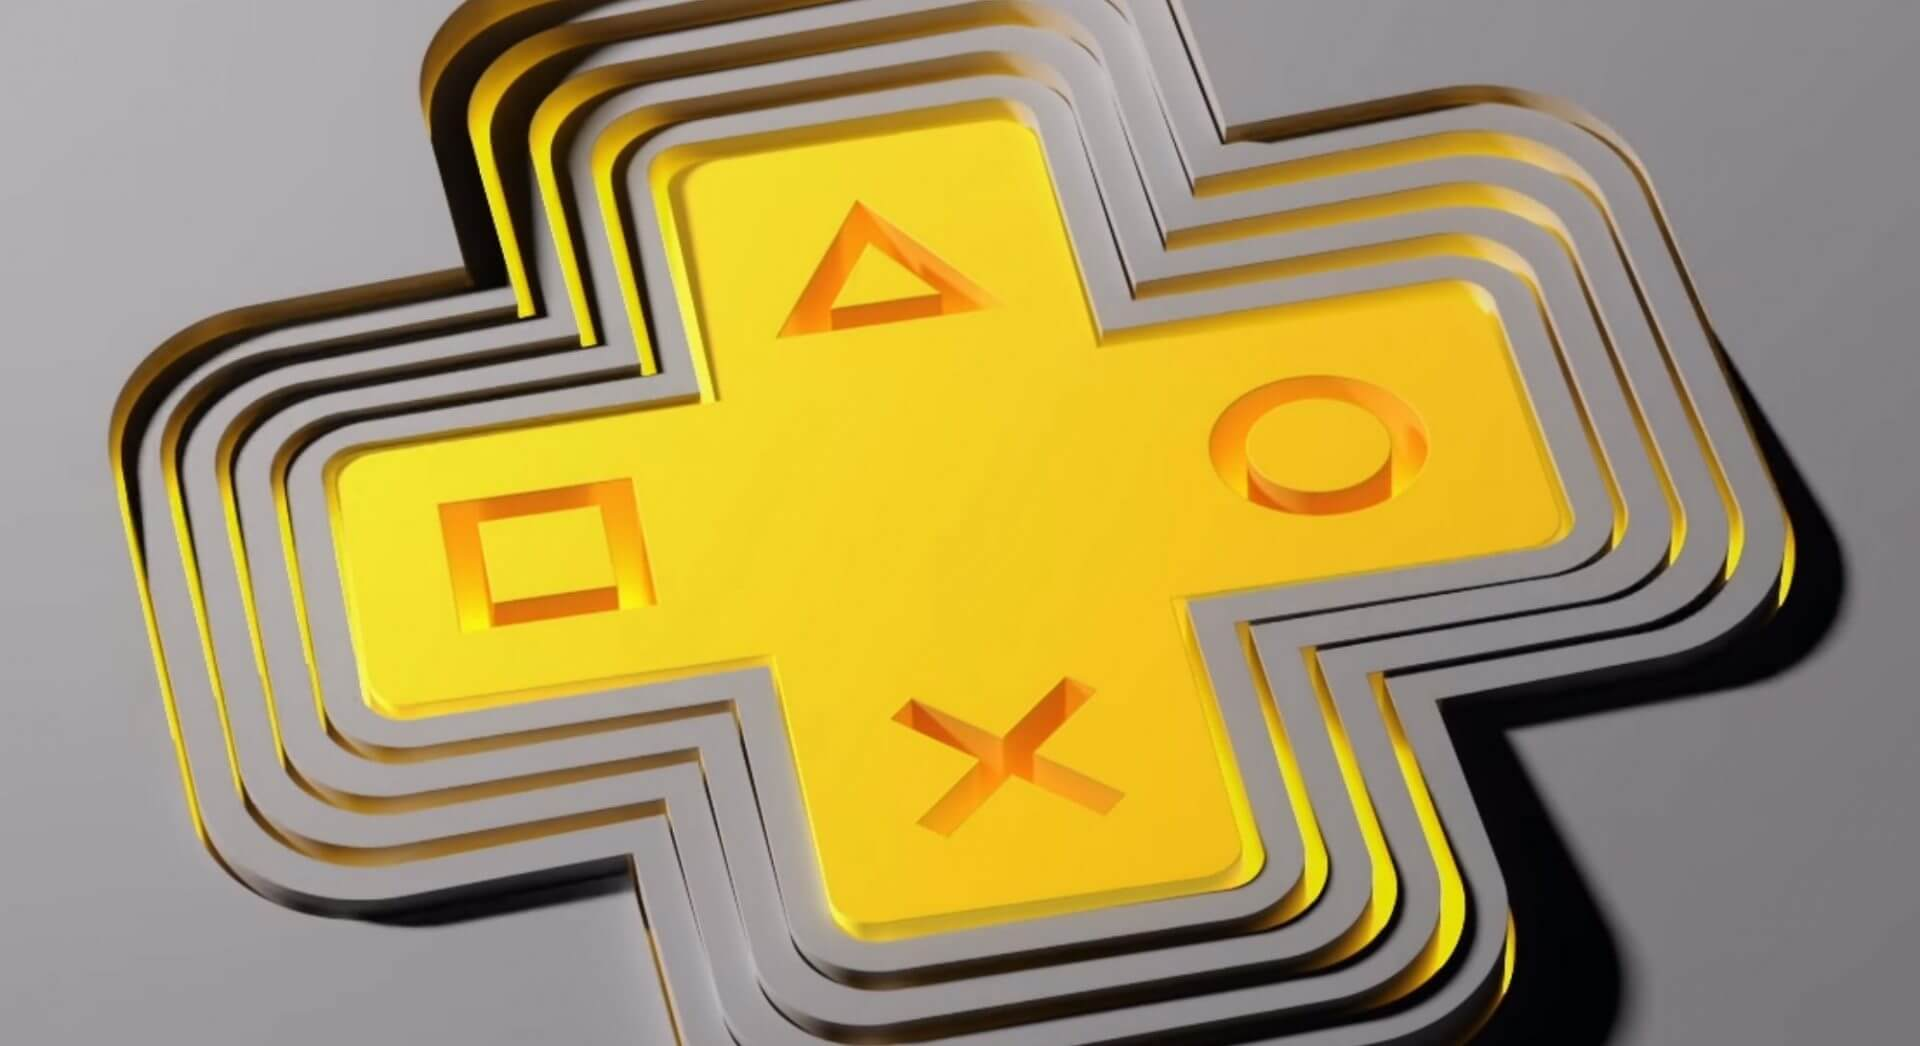 Sony Plans to Rival Xbox Game Pass With New PlayStation Subscription